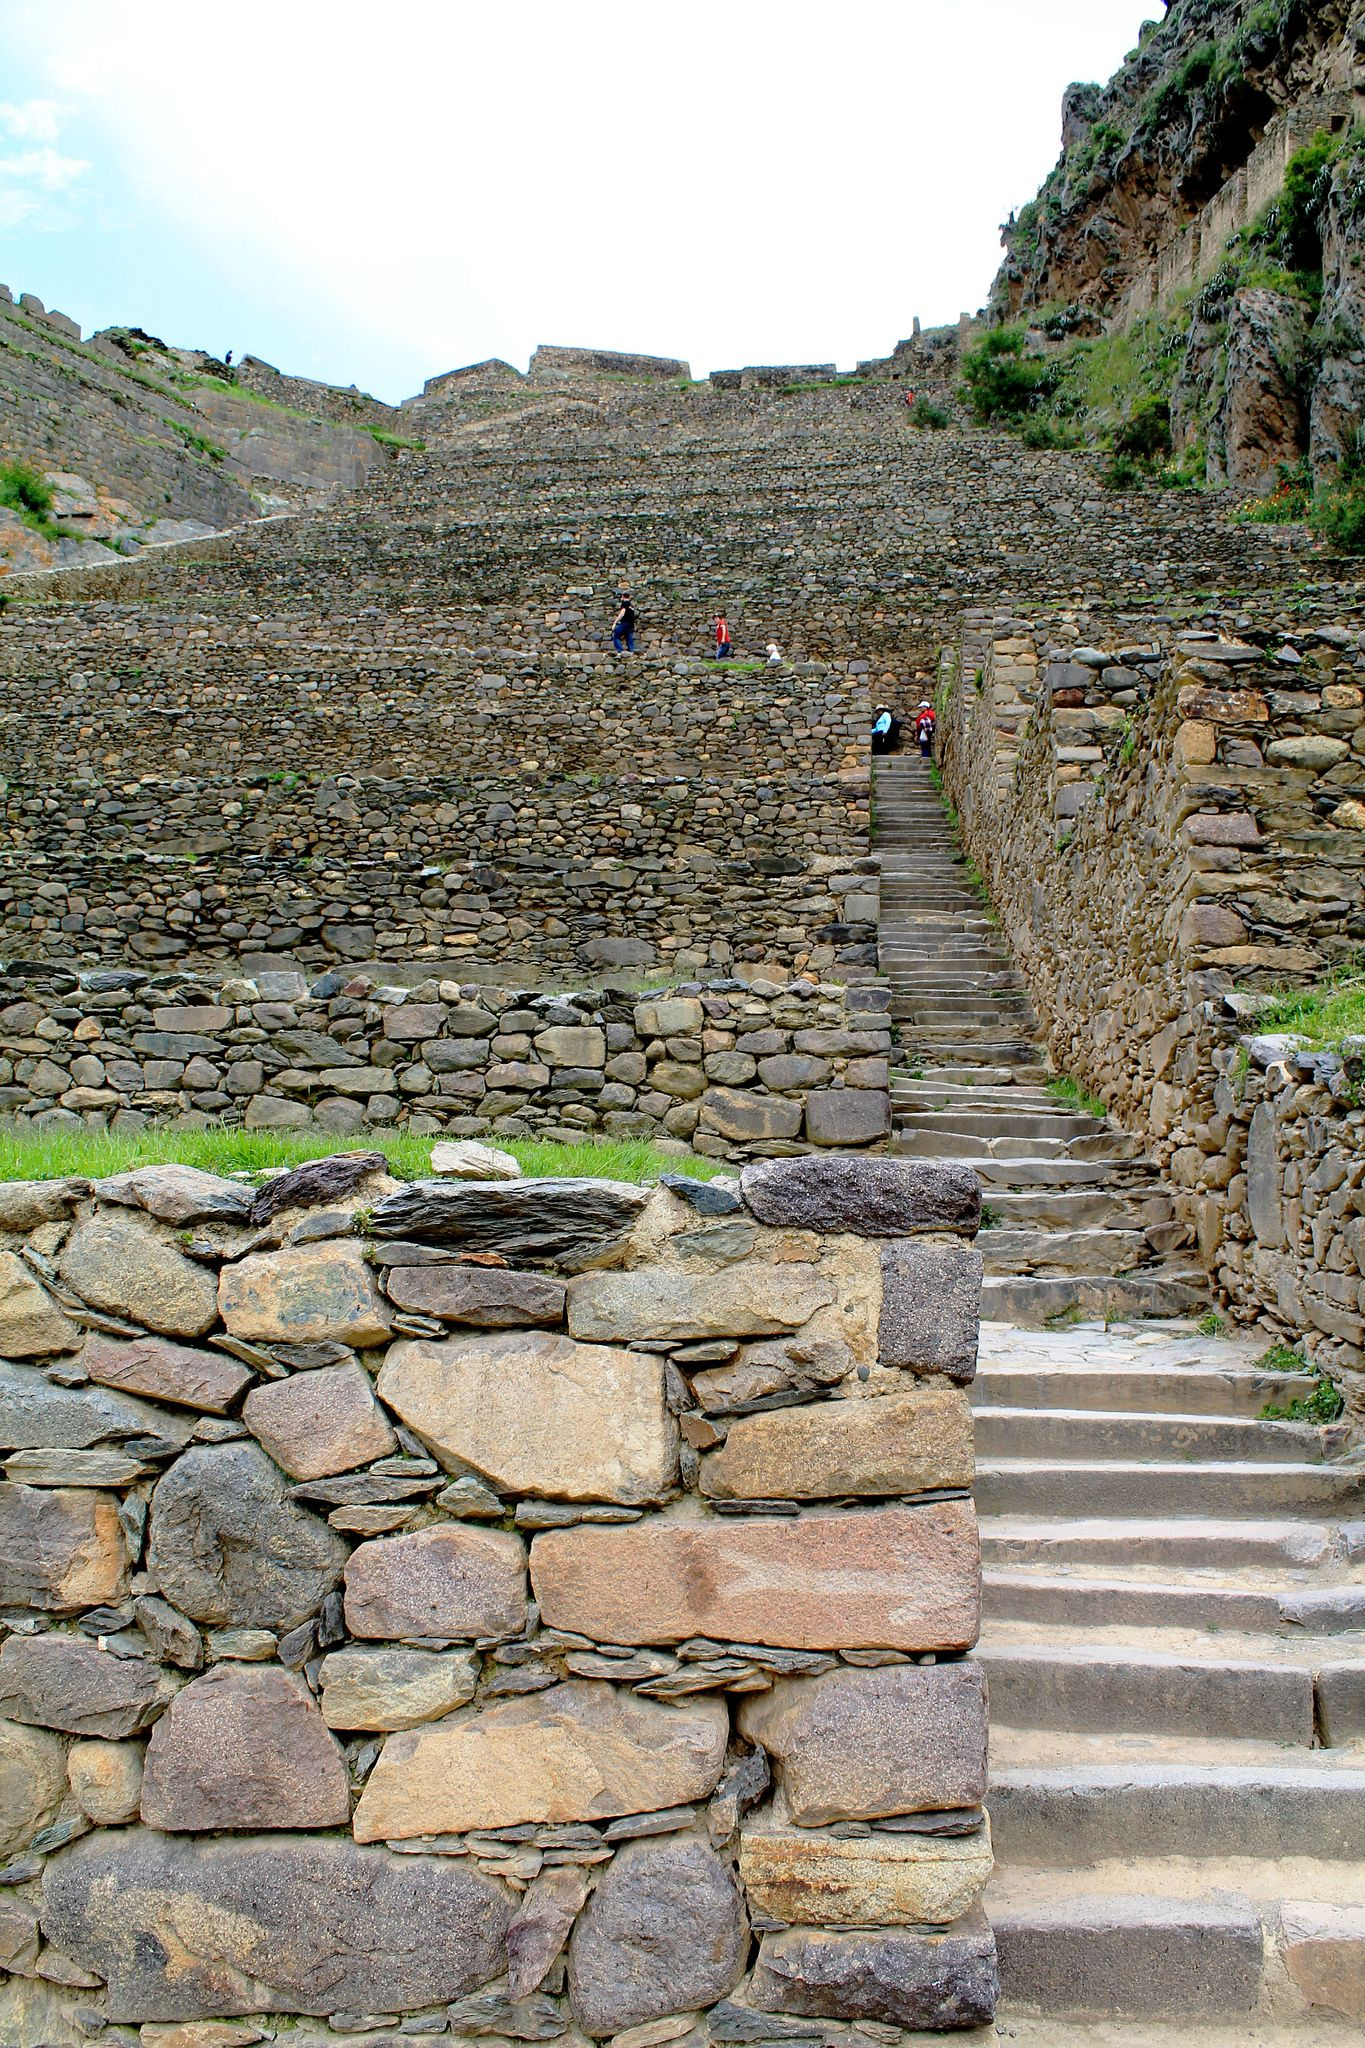 Ollantaytambo is a town and an Inca archaeological site in southern Peru some 60 kilometers northwest of the city of Cusco